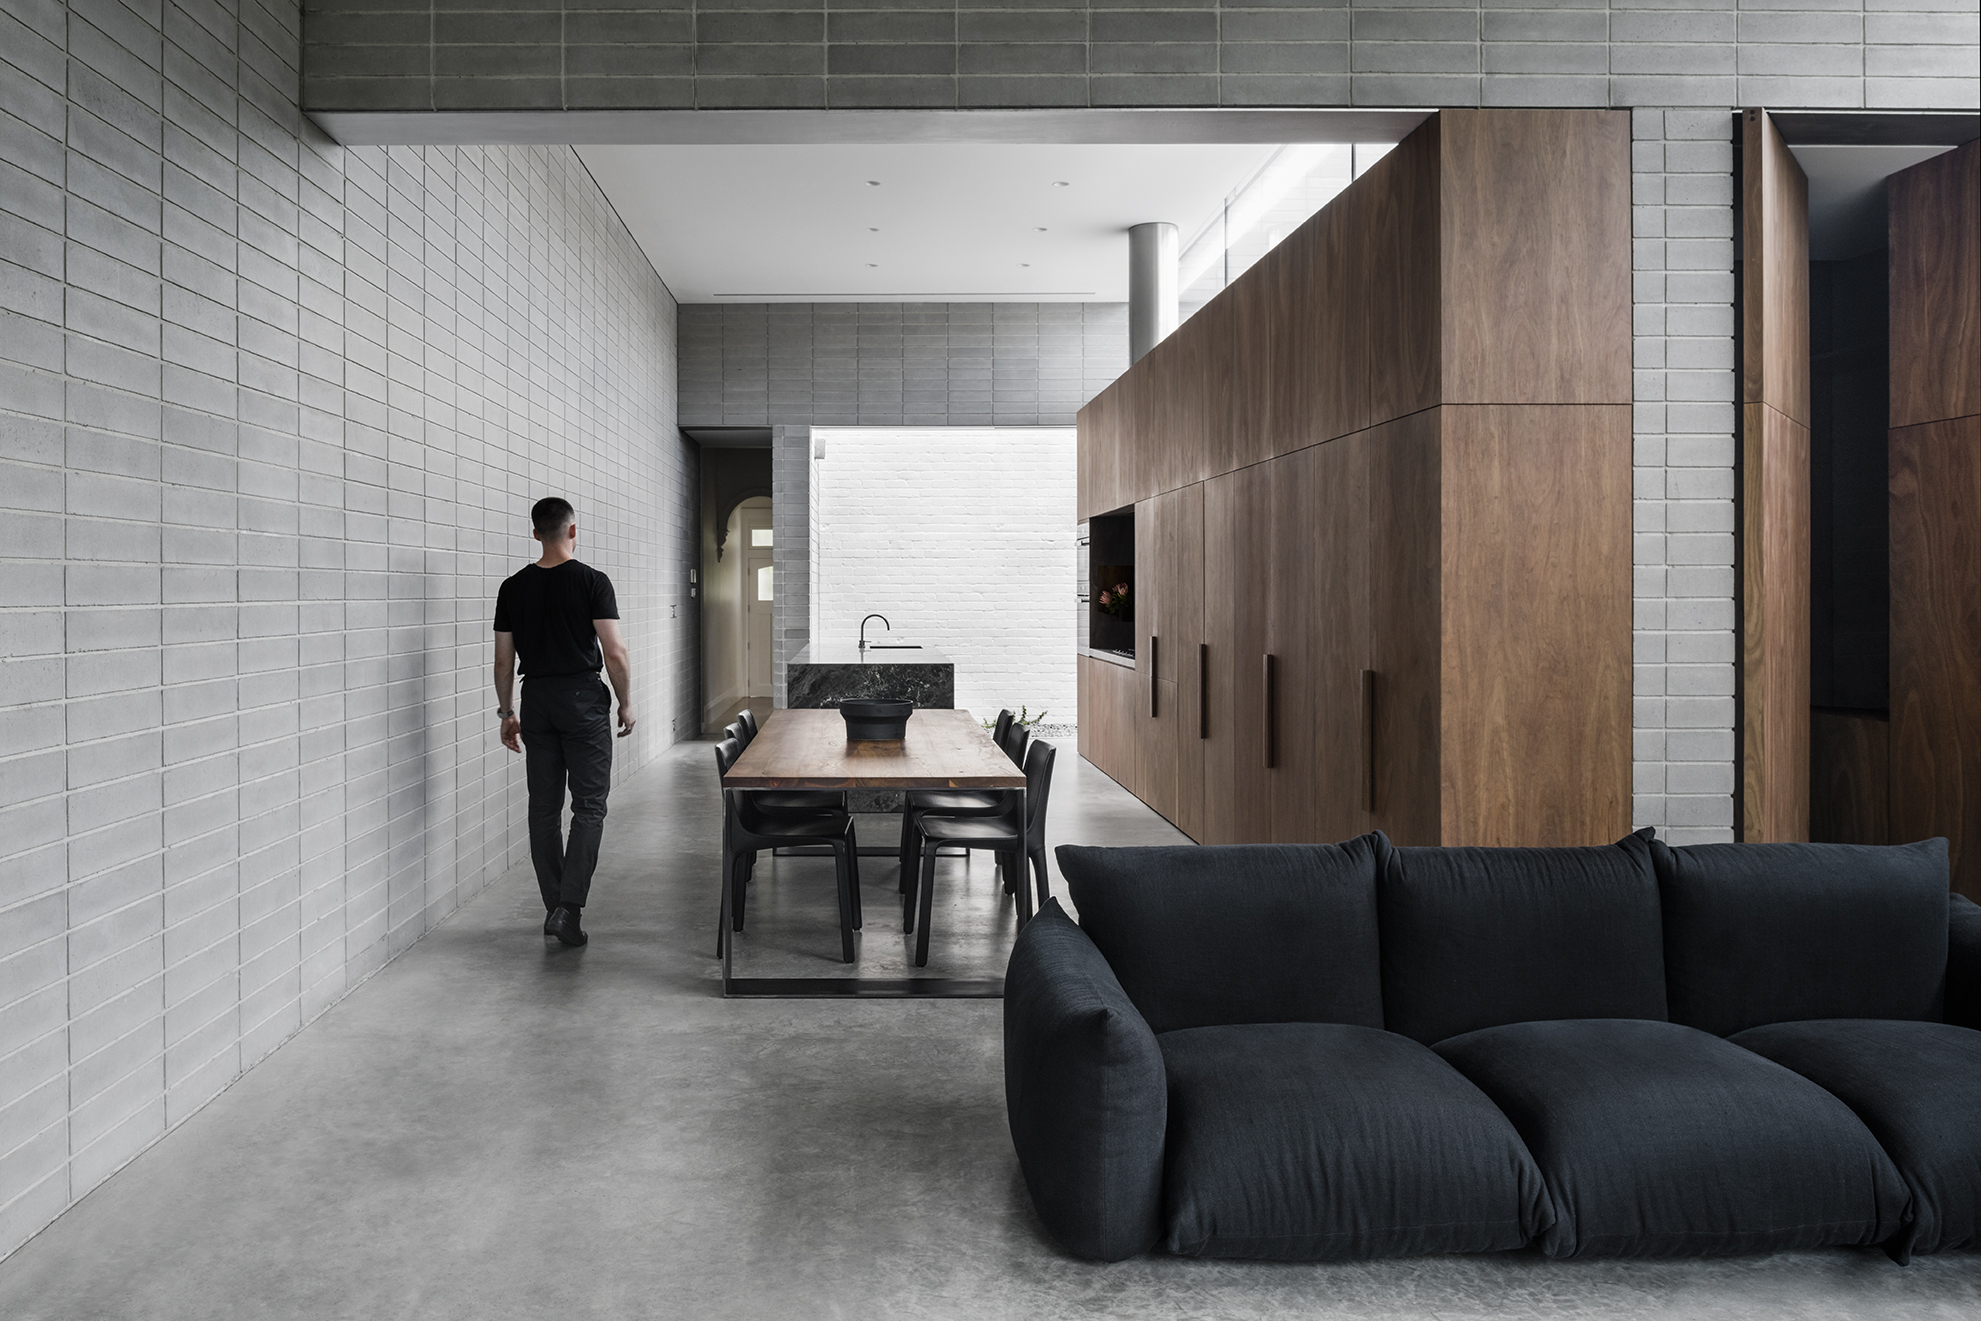 The use of concrete blockwork inside and out creates material and textural continuity between the interior and exterior of Highbury Grove located in Prahran, Melbourne. Photo Tom Blachford.